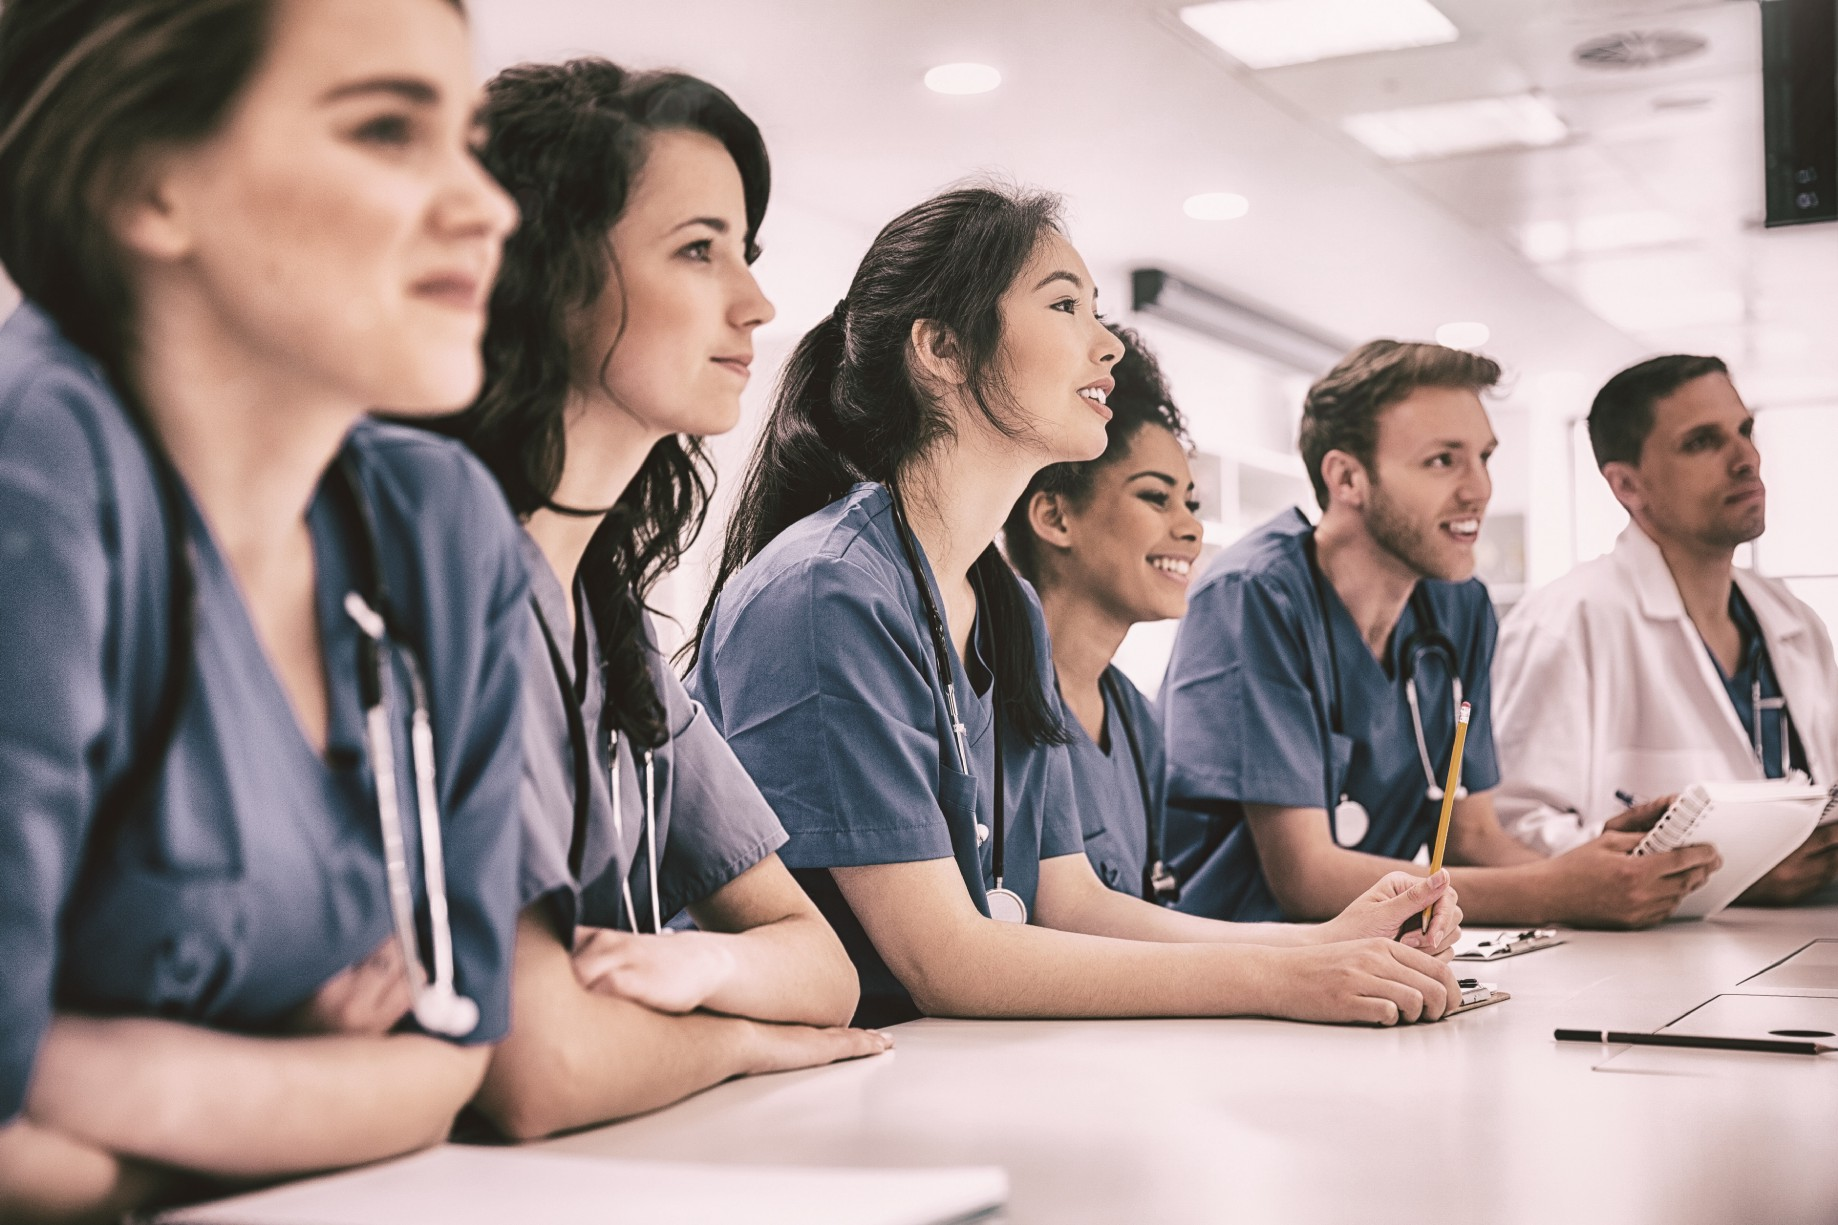 What to Do If You Receive an Inquiry From the USMLE, ECFMG, or NBME